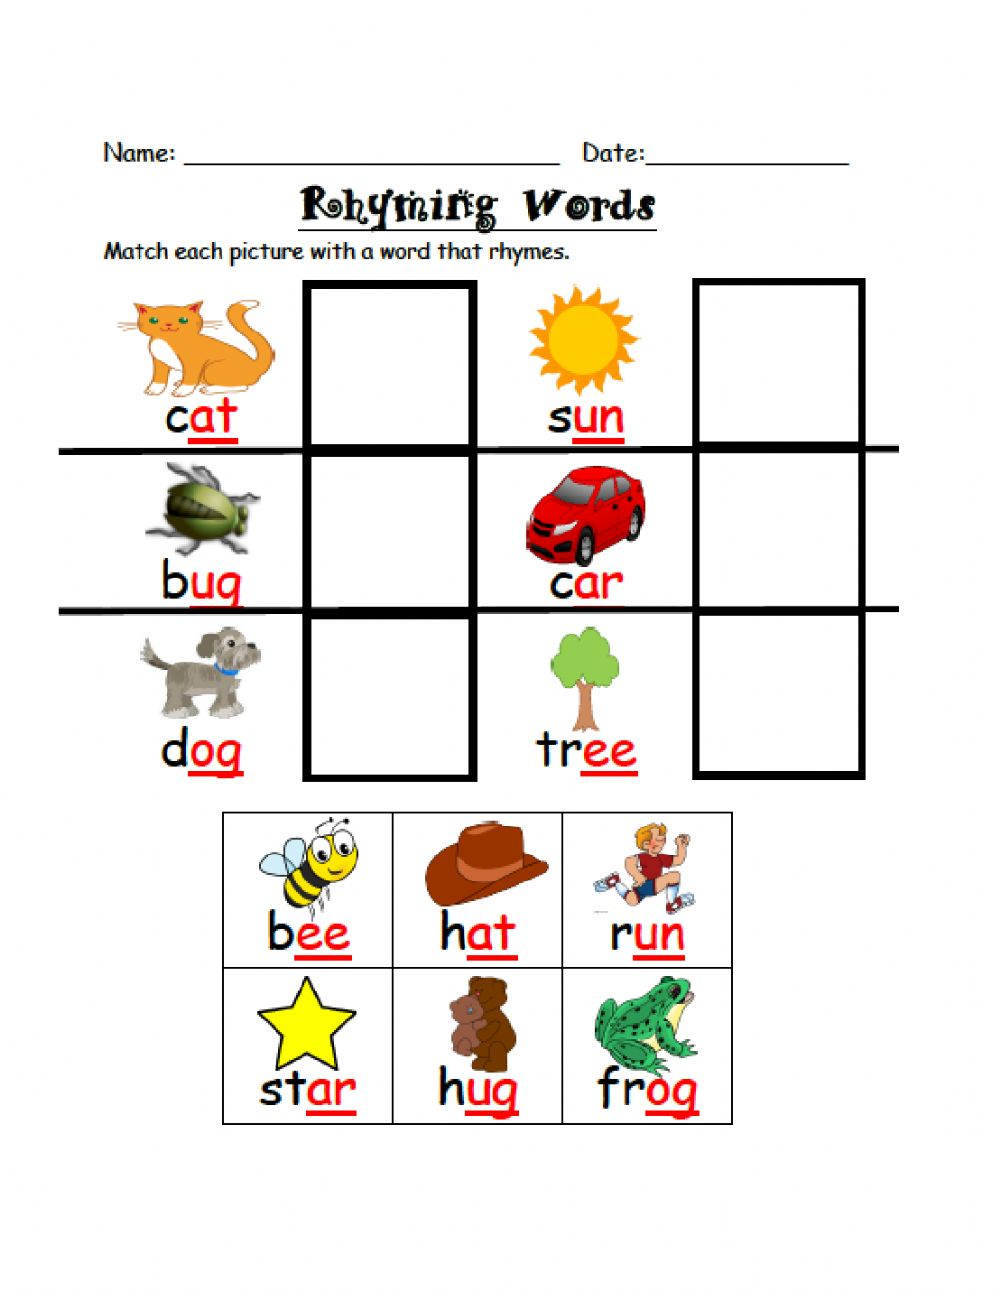 Rhyming Words Interactive Exercise For Kinder